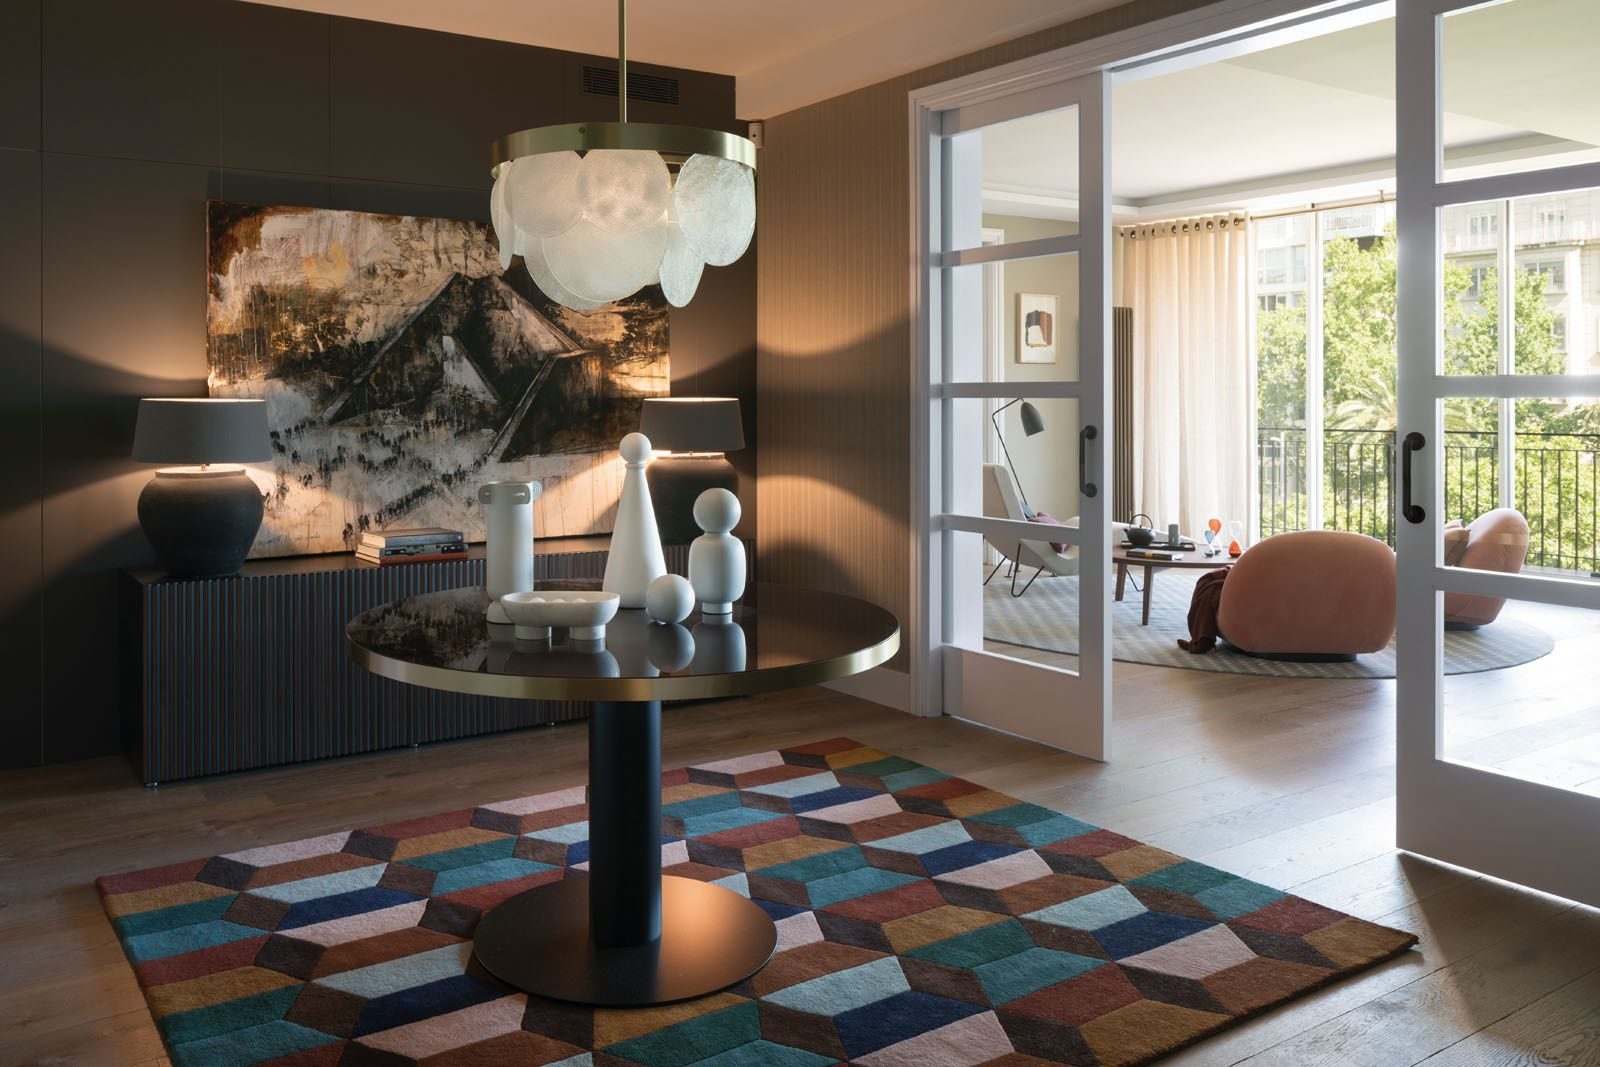 The hall features a Gubi table, CTO Lighting suspension lamp, Horm cupboard, BSB Alfombras rug as well as a table lamp designed by The Room Studio